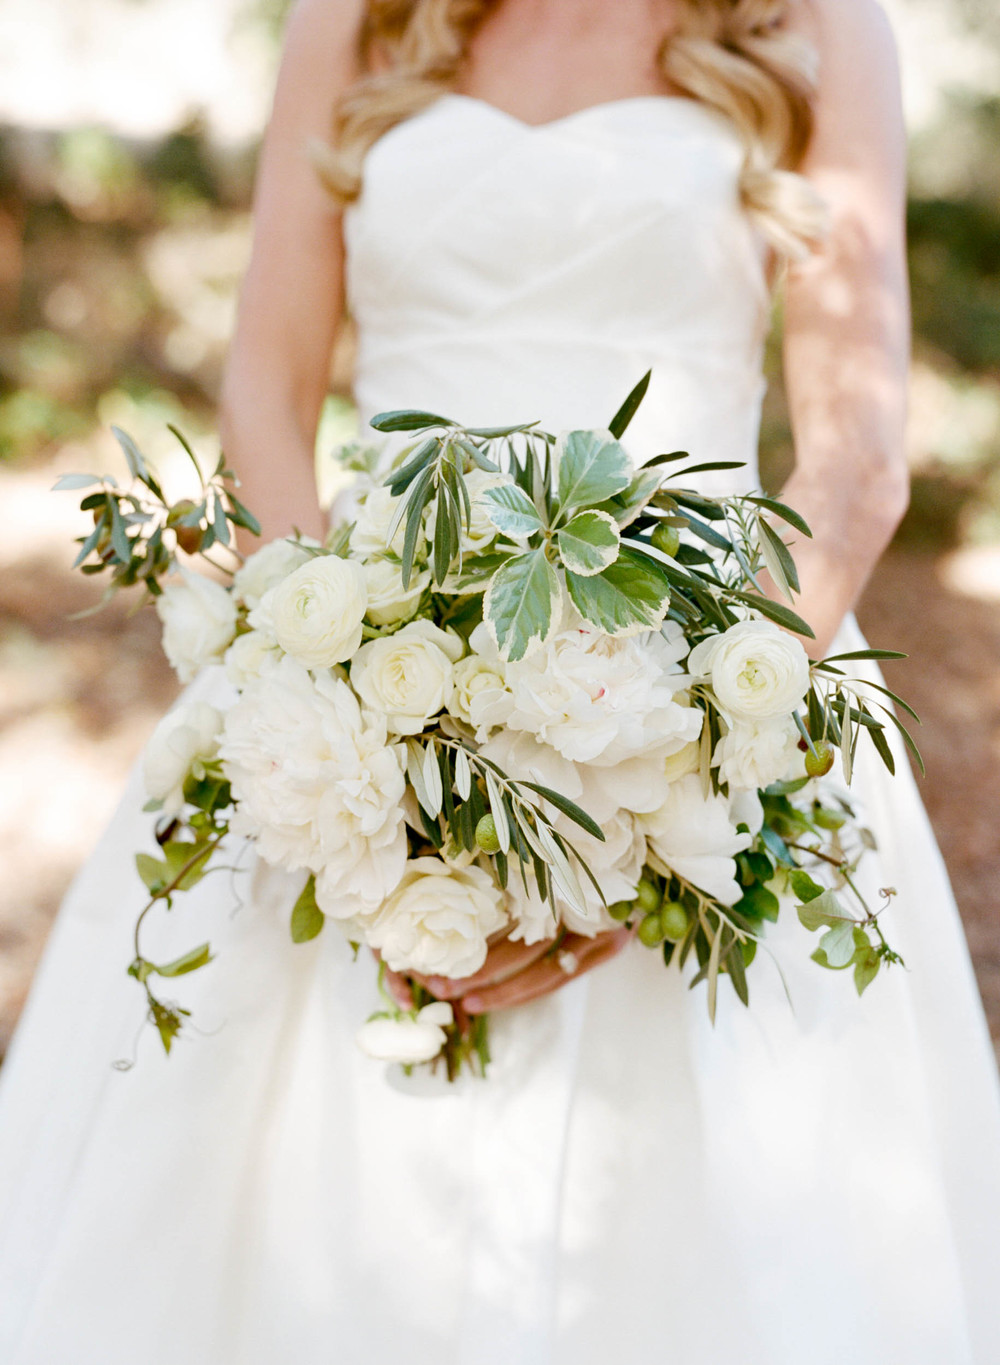 SylvieGil-Durham-Ranch-Organic-Ethereal-Rustic-Olive-Bouquet-Wedding